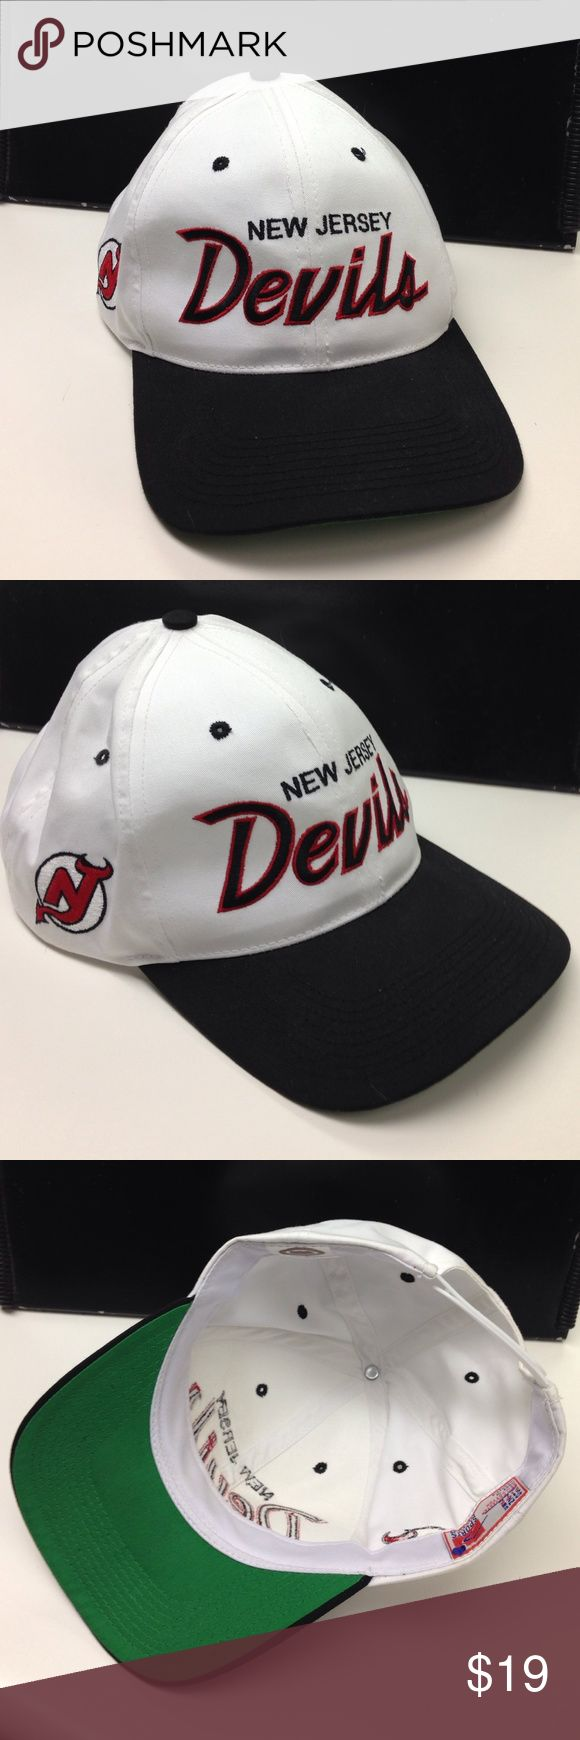 New Jersey Devils Hat New Jersey Devils Hat. Never worn, only used for display. Like brand new. Adjustable strap. One size fits all Sports Specilaties Accessories Hats